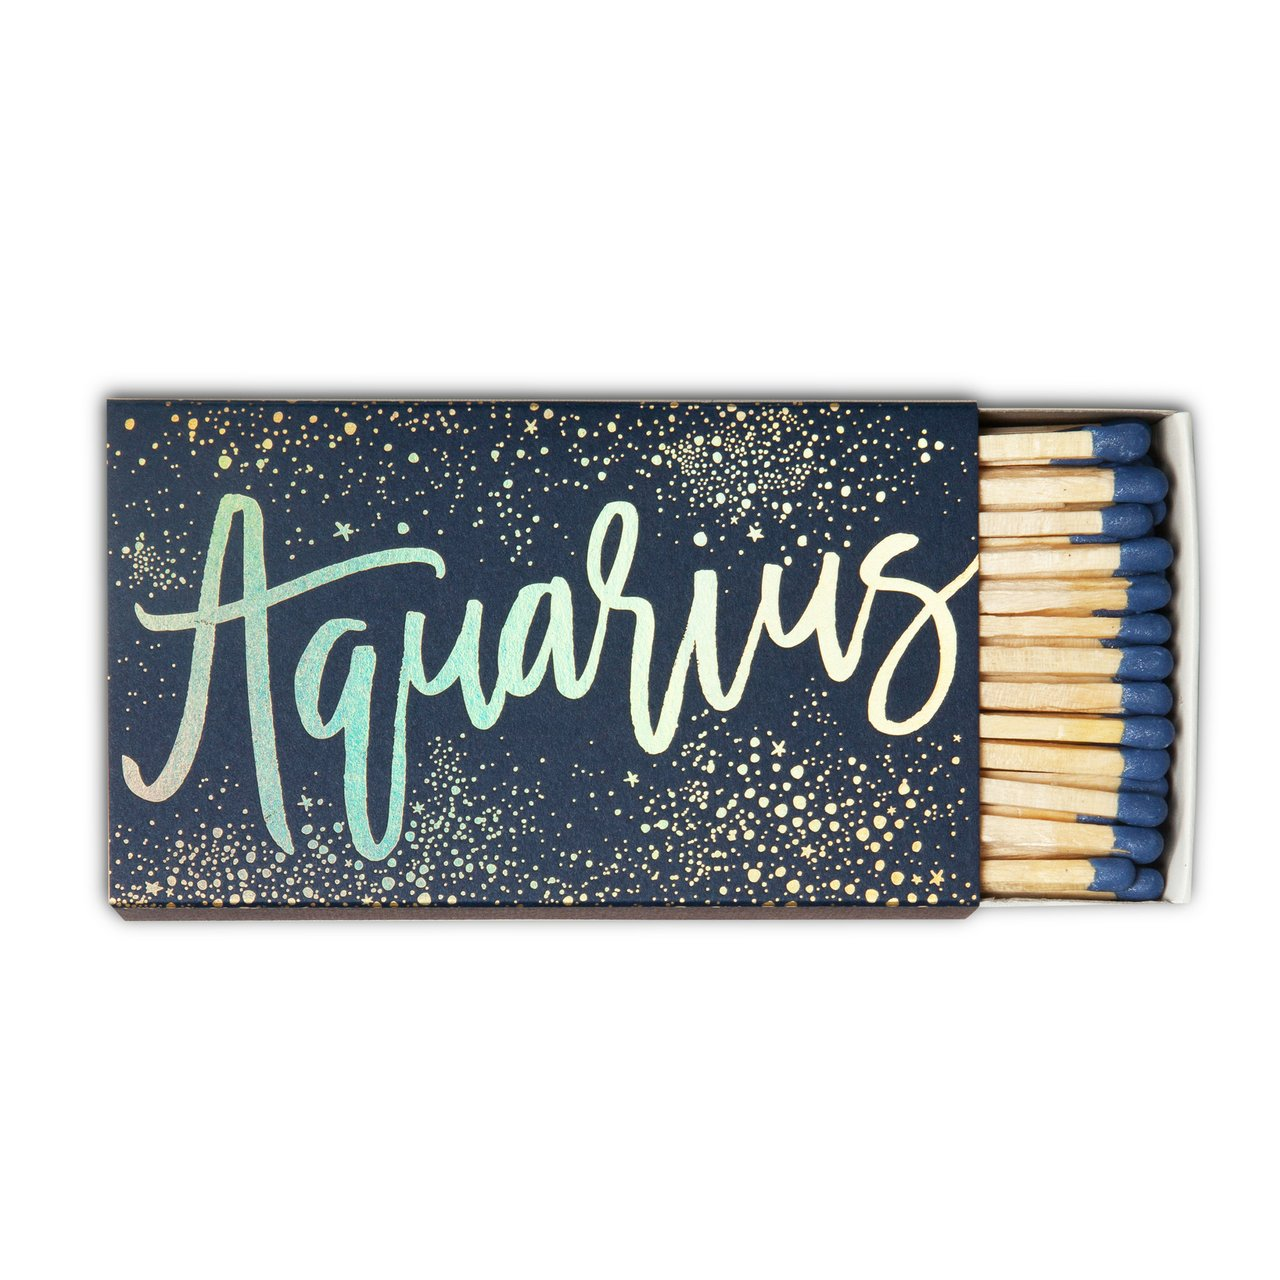 Aquarius Matchbox